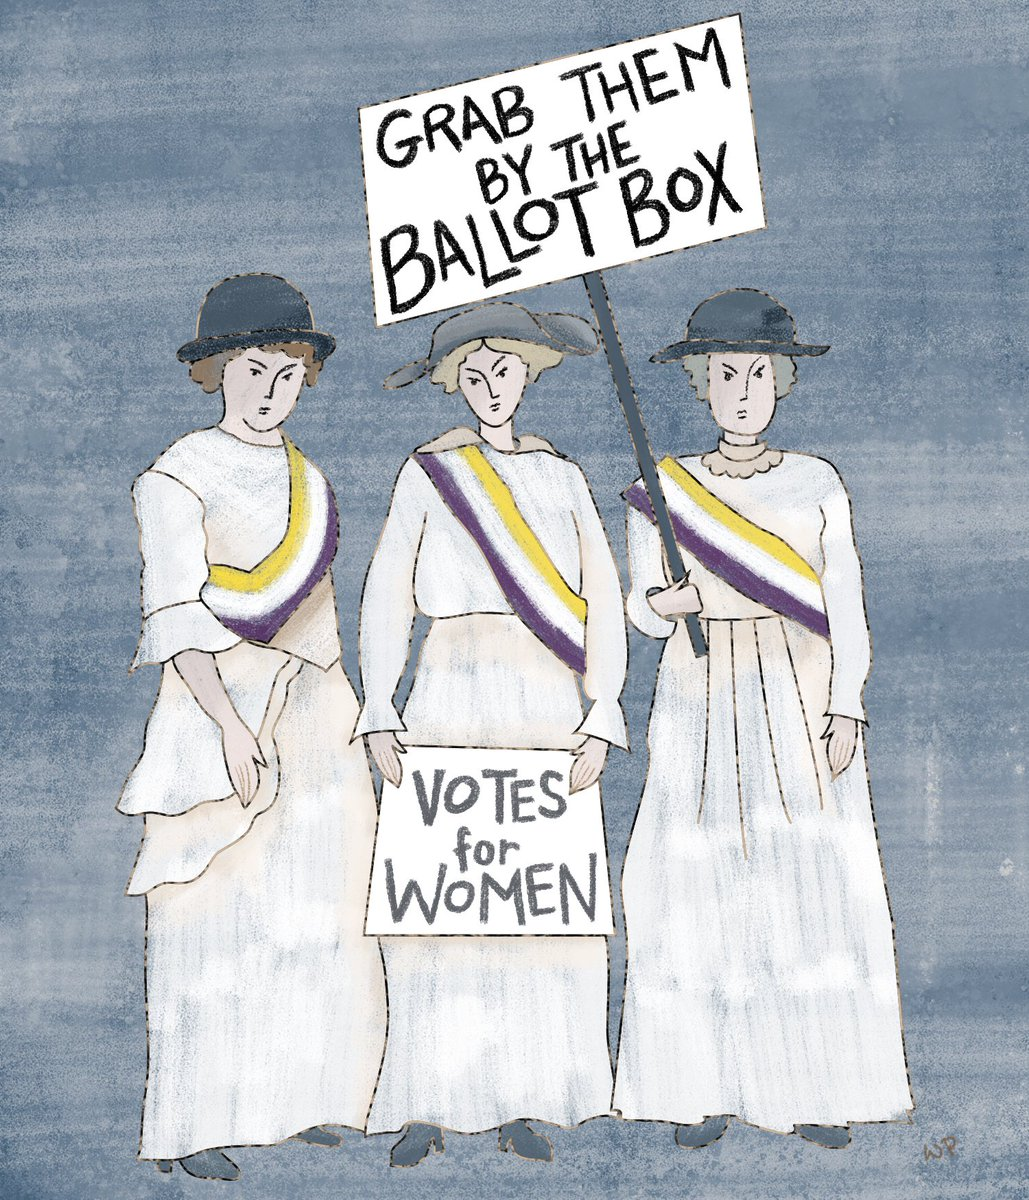 The suffragettes have something to say about #RepealThe19th. https://t.co/c0OmAKxS9a